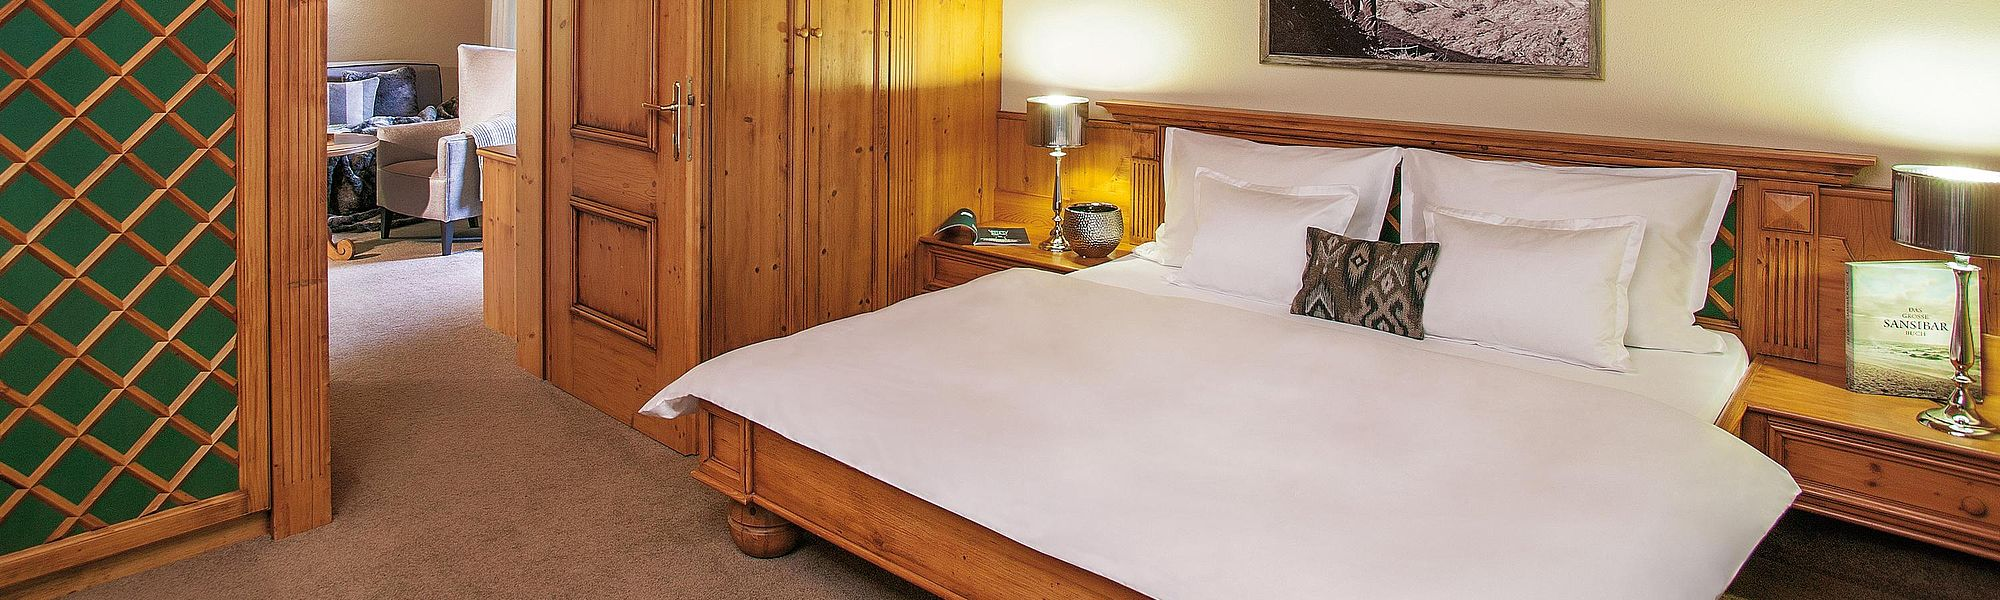 Comfortably furnished in a Tyrolean style